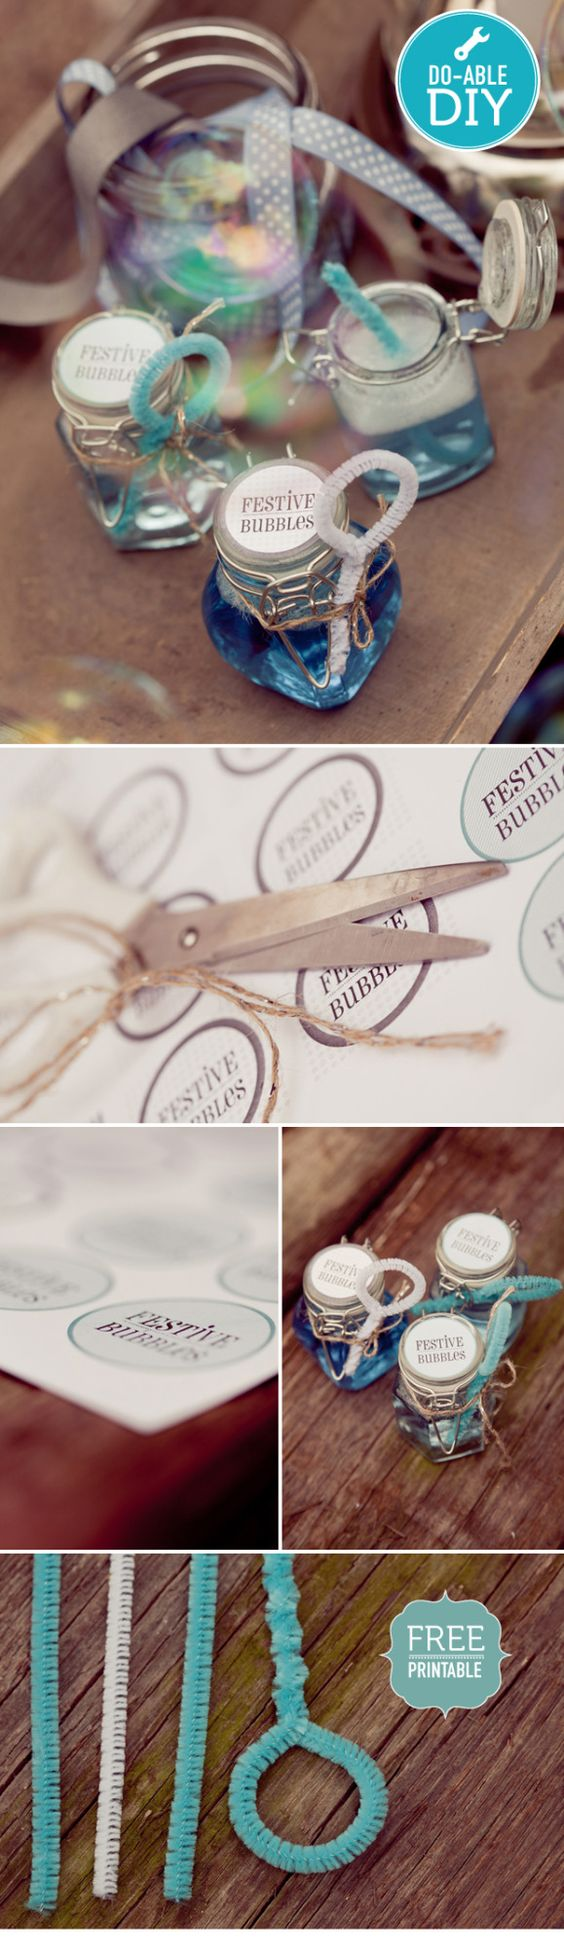 i just have to find an event that i can do this for. diy bubble favors. maybe using jars leftover from the wedding